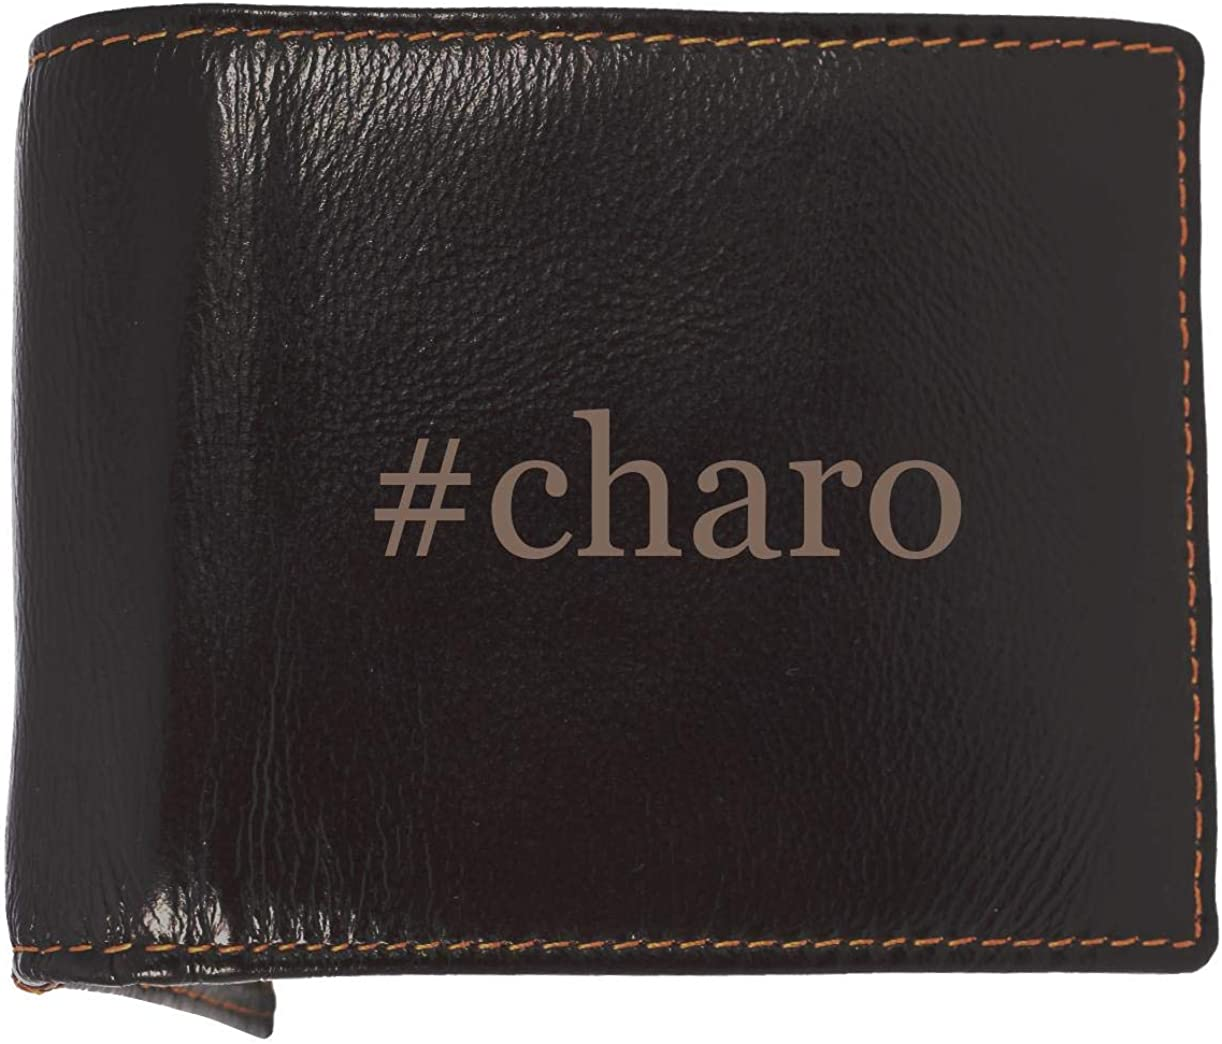 #charo - Soft Hashtag Cowhide Genuine Engraved Bifold Leather Wallet 61q0dXbcvEL